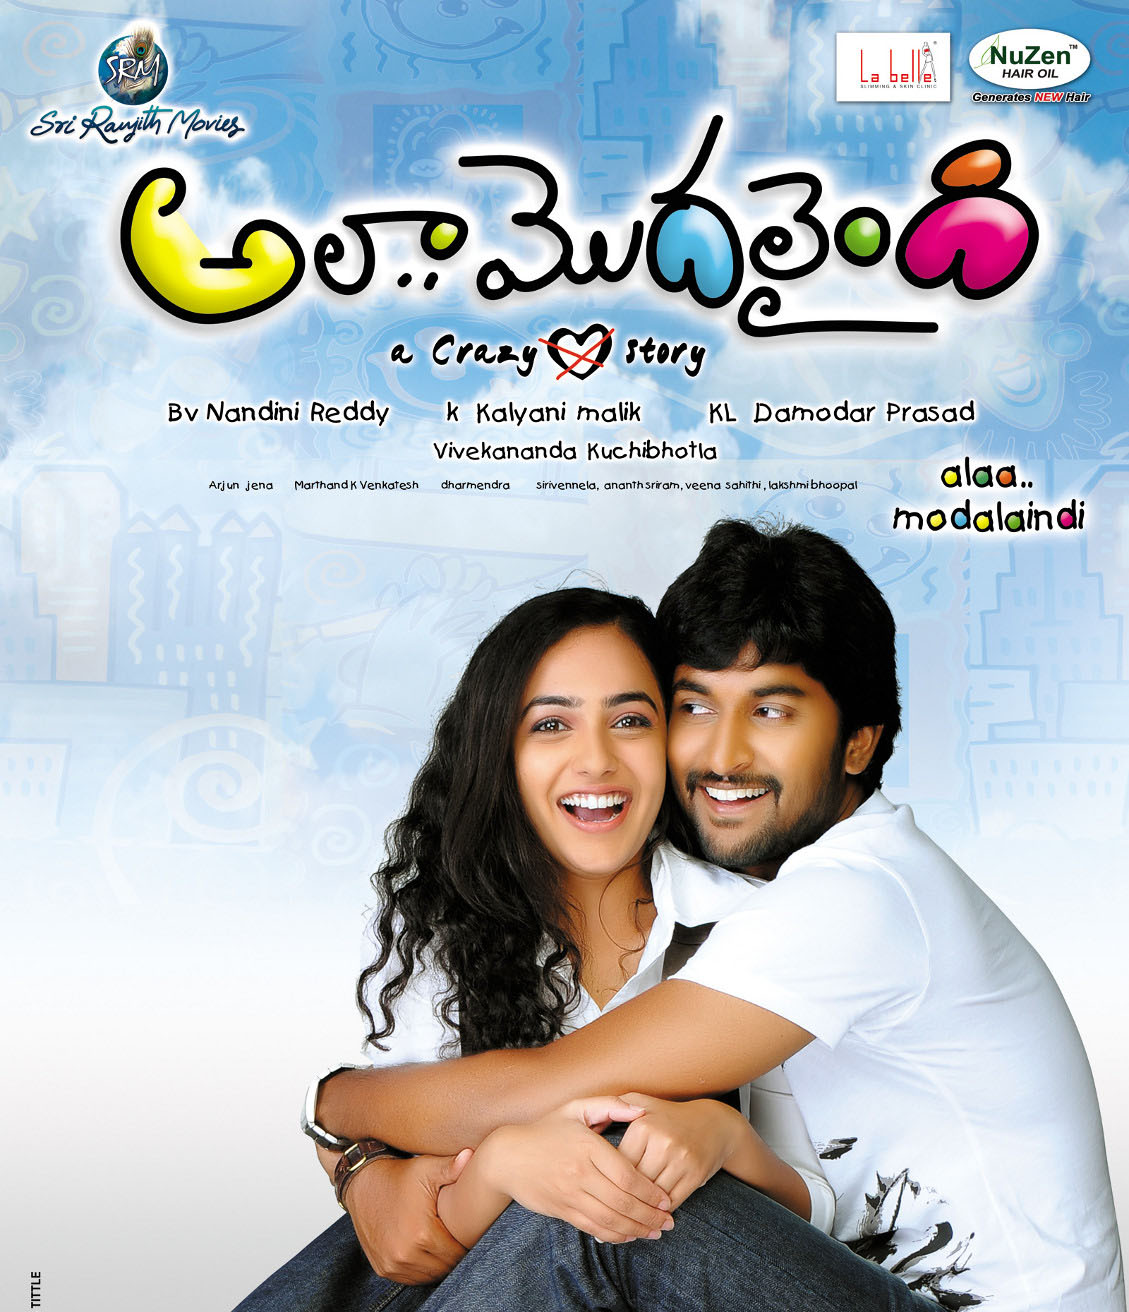 Satyajit Jena New Song Mp3 Downlod: Watch Ala Modalaindi DVD Rip Movie Online